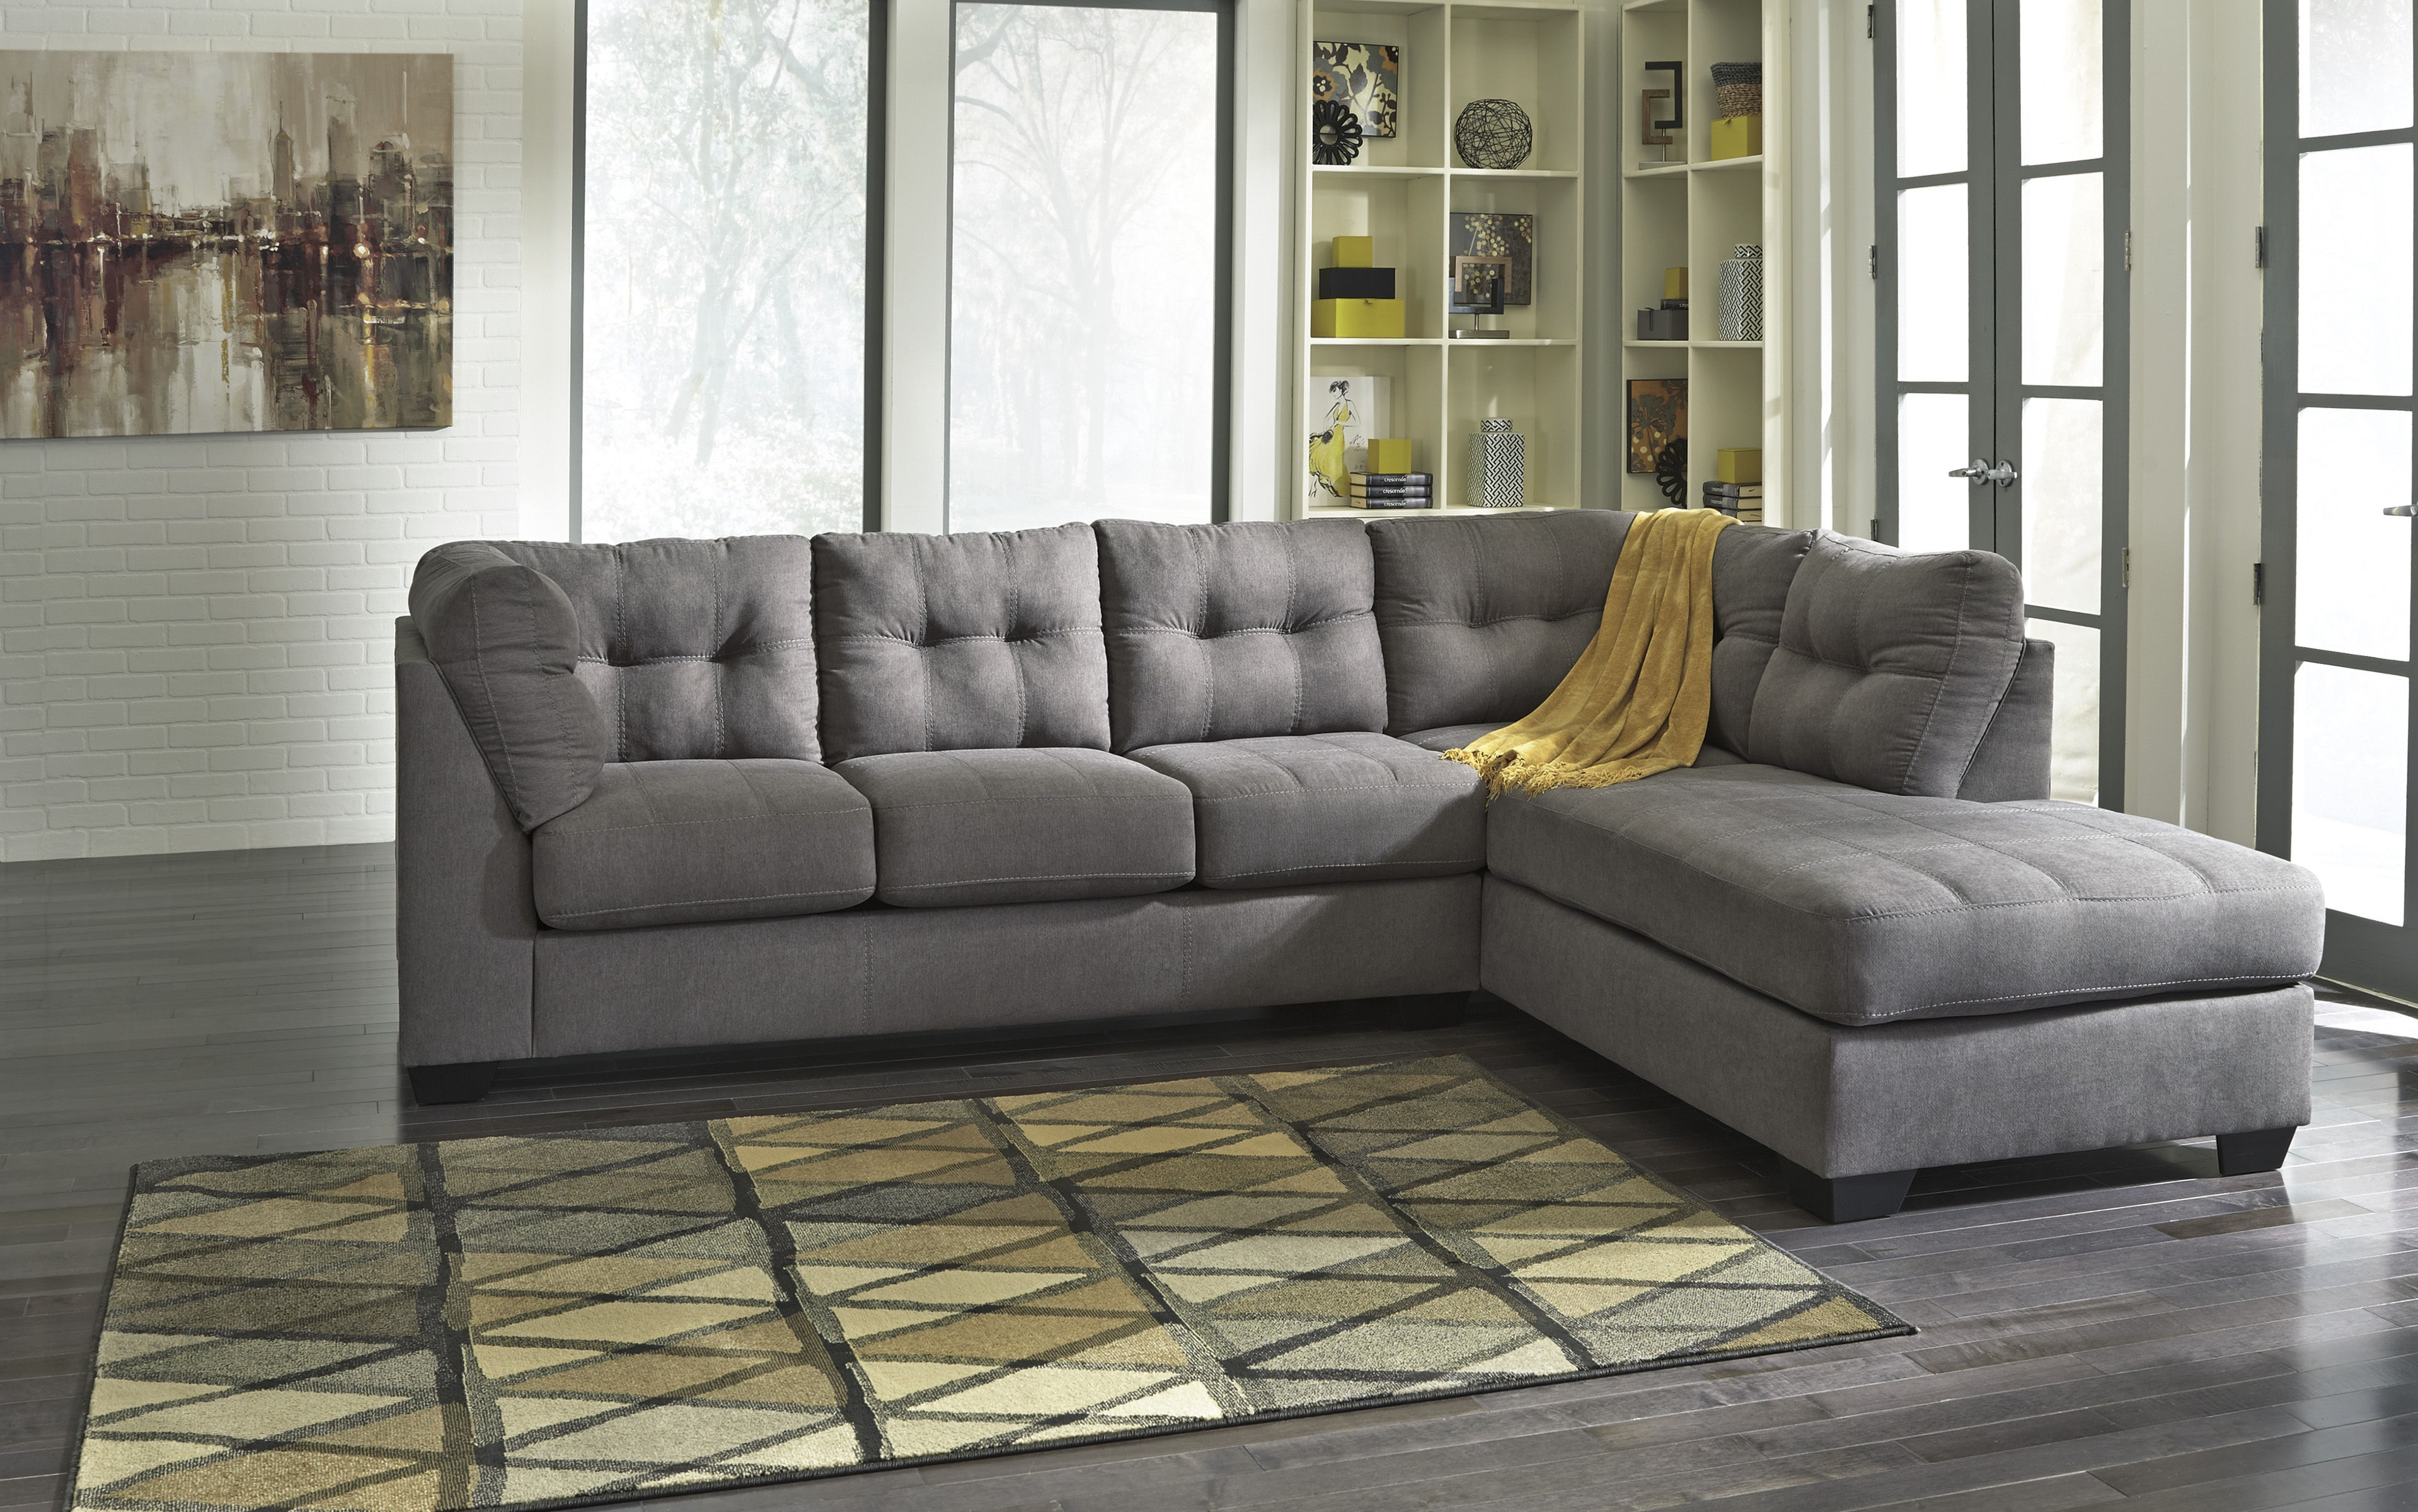 Ashley Furniture Maier Charcoal Raf Chaise Sectional | The Classy Home Intended For Sectional Sofas That Come In Pieces (View 3 of 10)